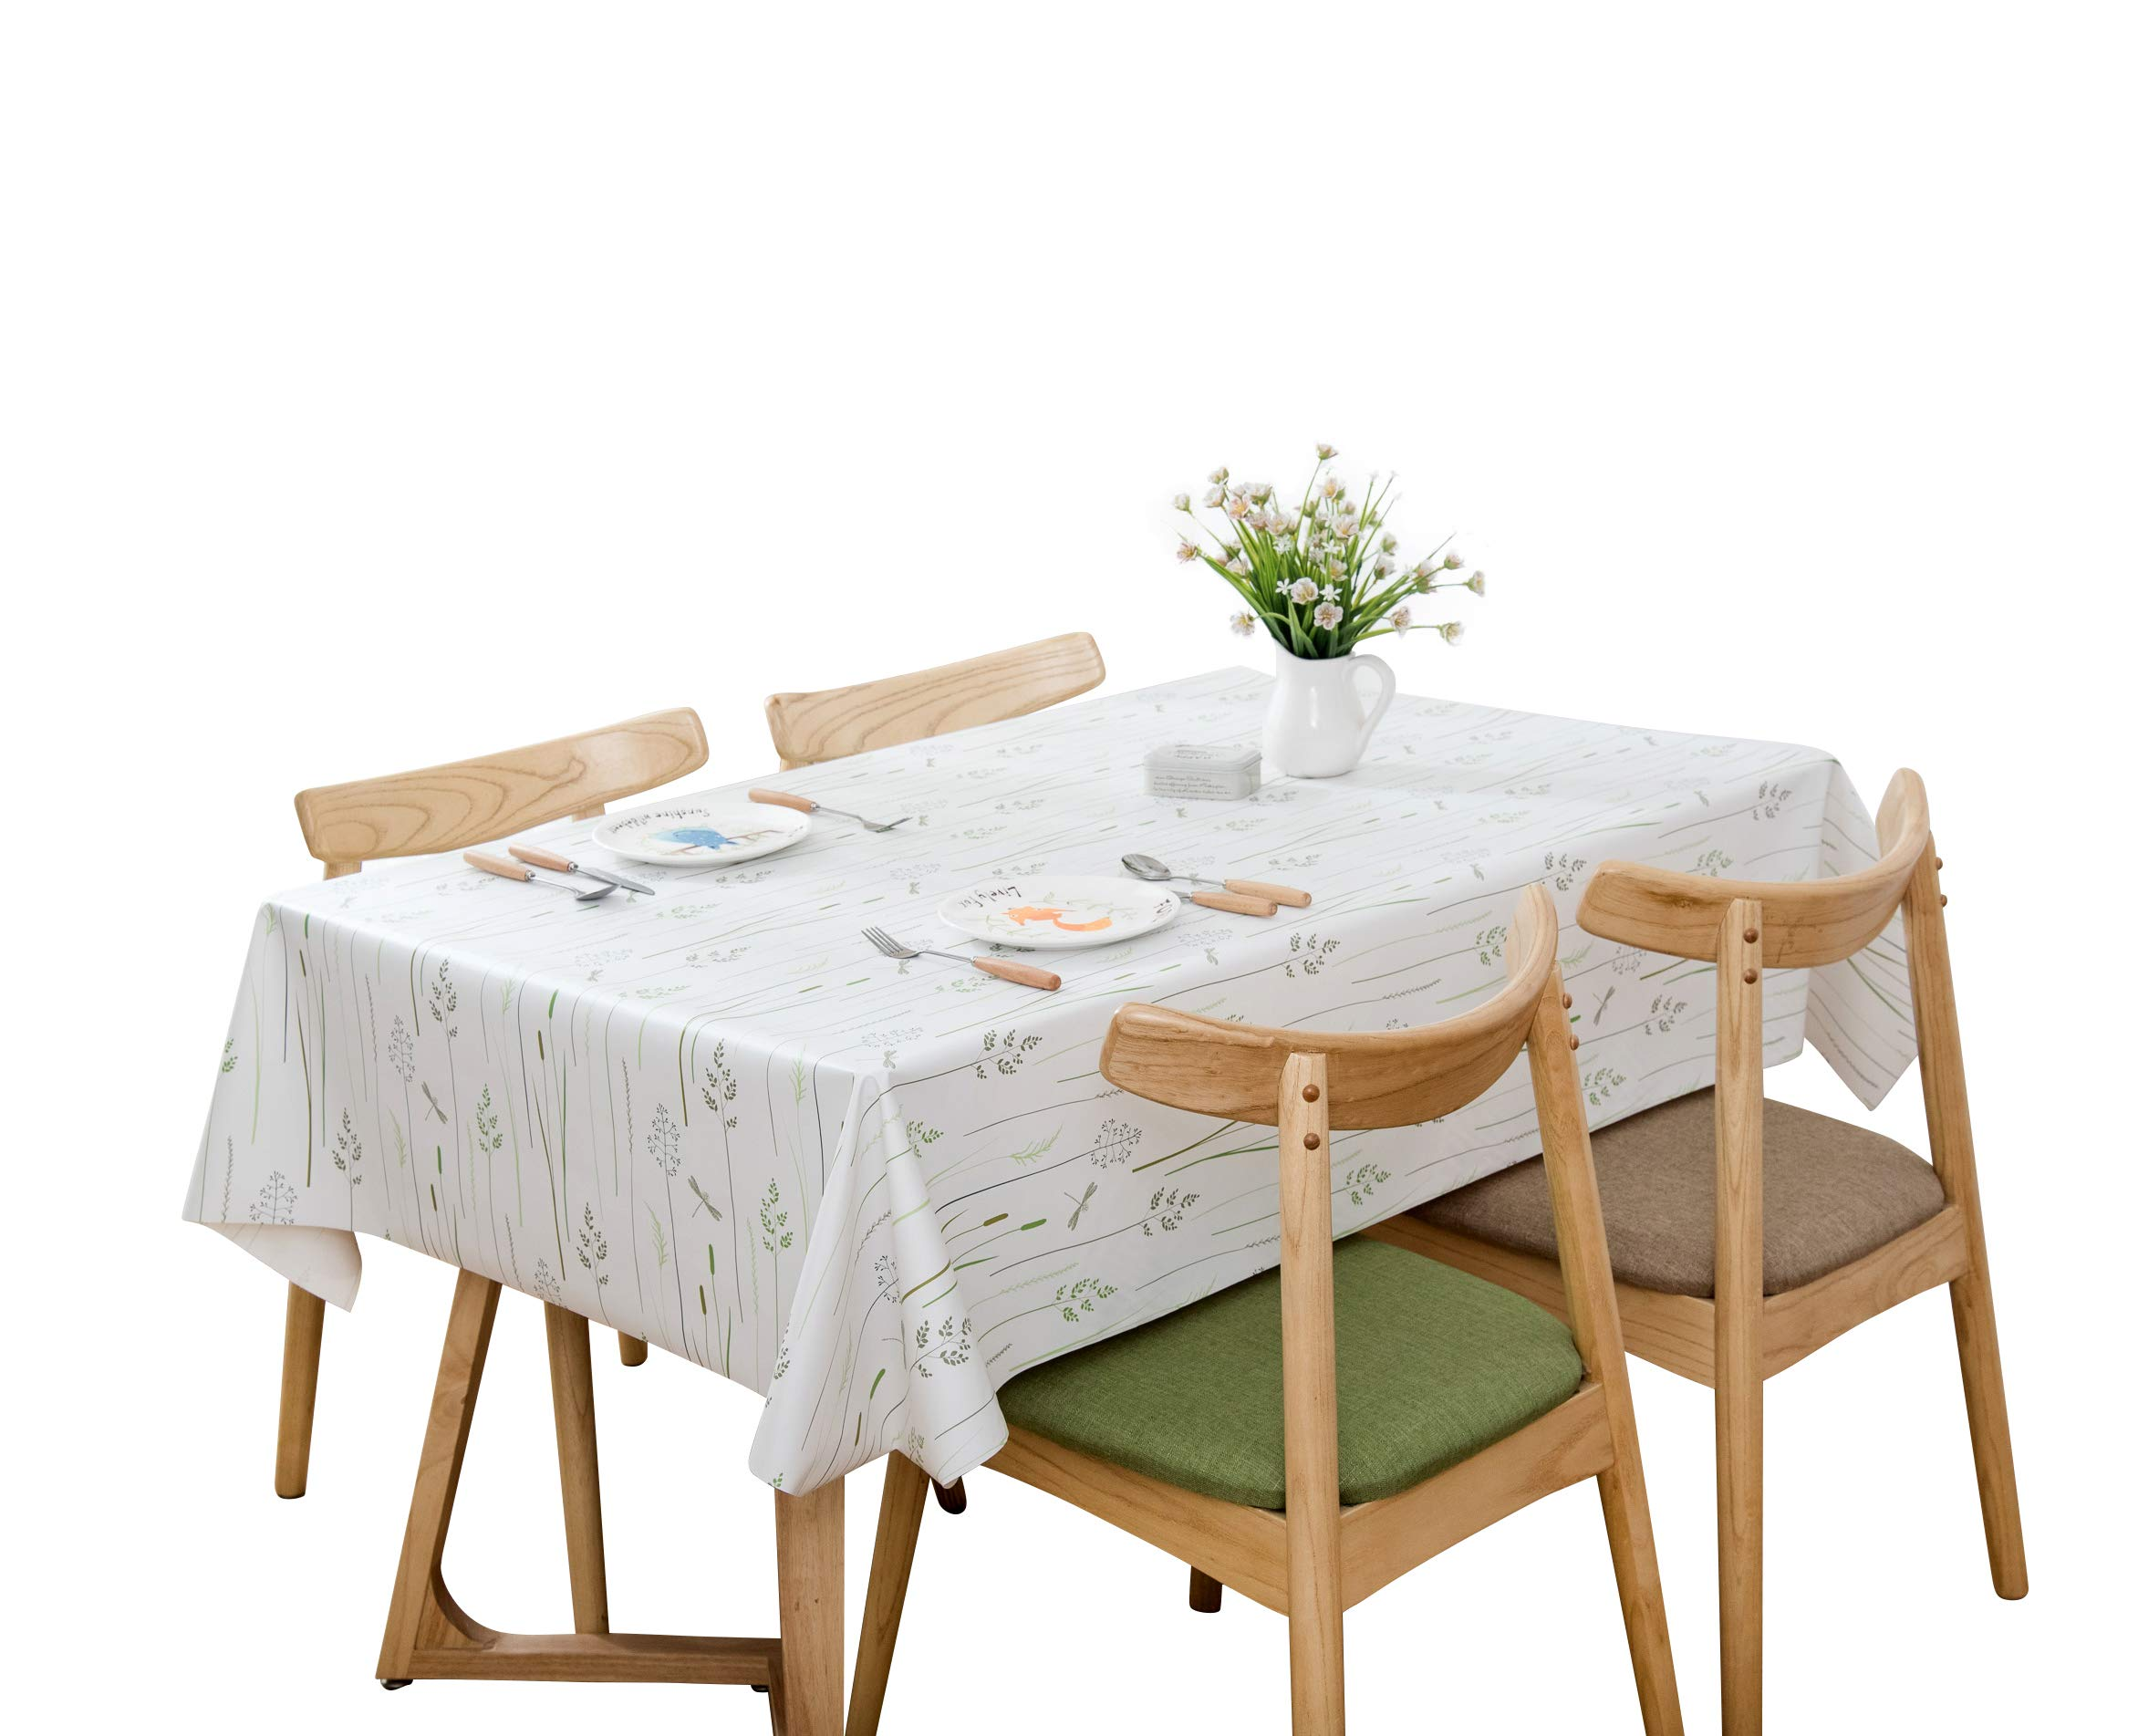 Lavin Tablecloth Pvc Wipe Clean Table Cloth Waterproof Oil Cloth